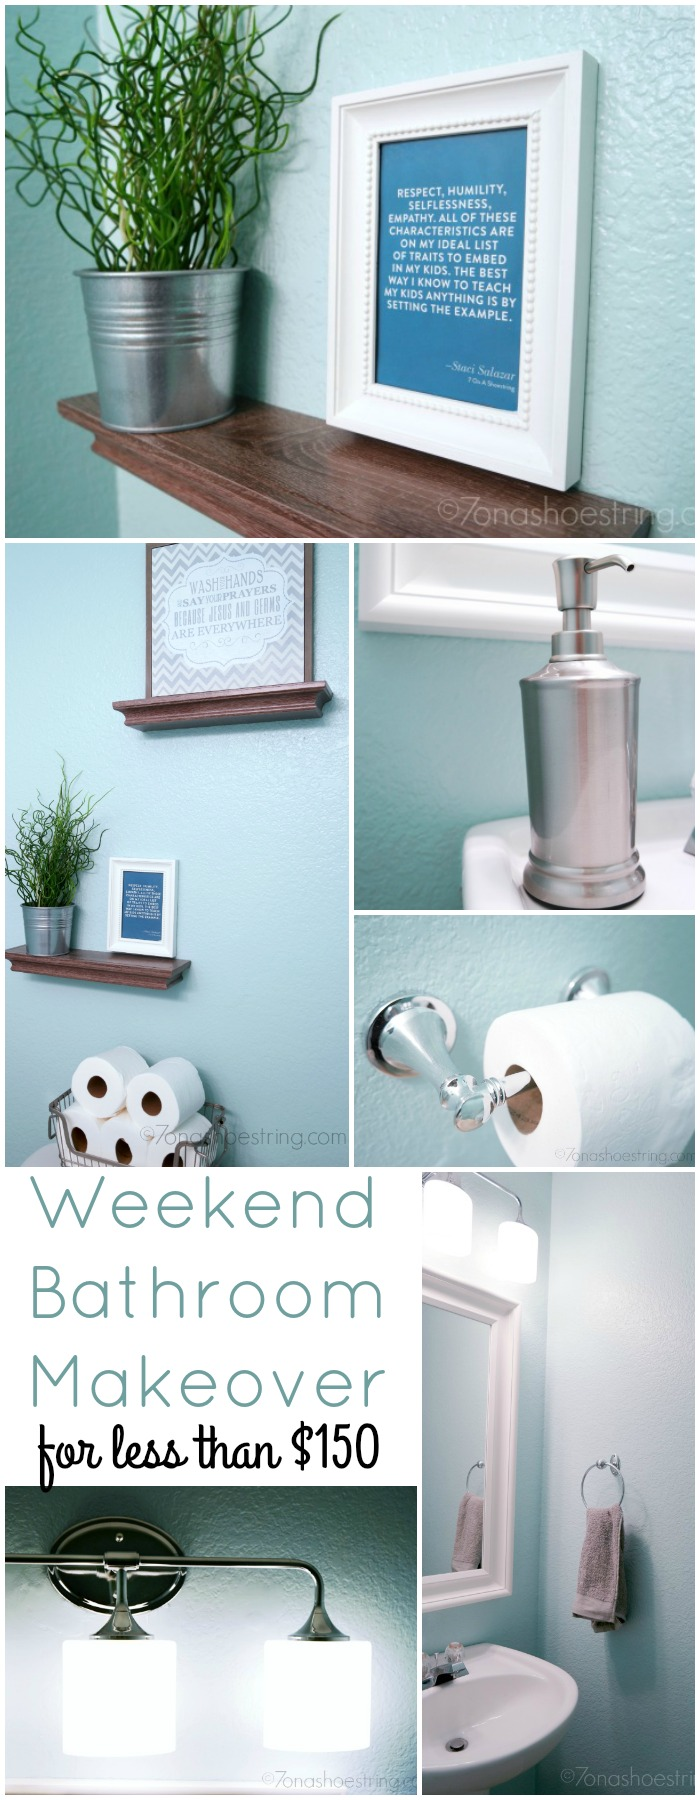 Weekend Bathroom Makeover for less than $150 - The Home Depot